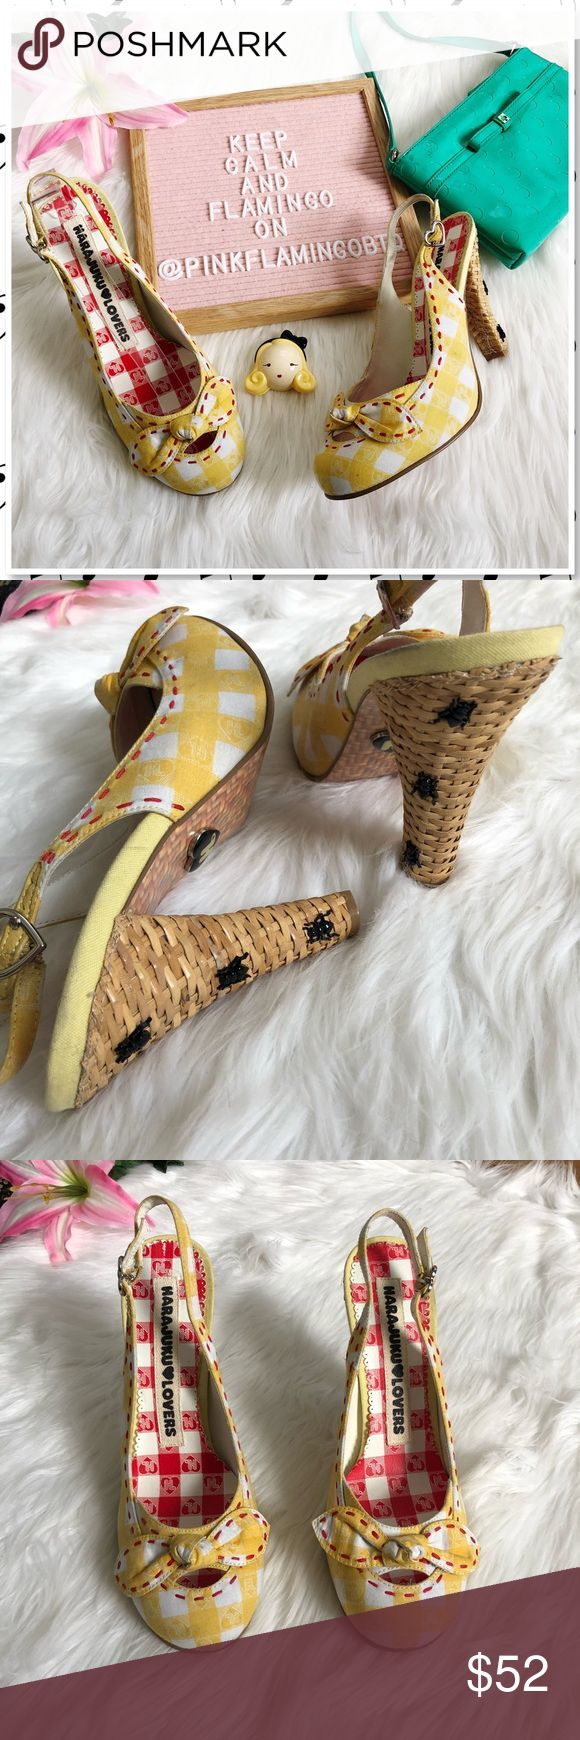 "NEW Harajuku Lovers Japan Basket Libby Picnic Heel NWOT Harajuku Lovers Japan Basket Libby Picnic Heels. Time to ring in spring with the perfect heels for a picnic! Yellow gingham plaid Slingback heels with red topstitching, tied bow on the vamp, 'basket weave' heel, Heart shaped sling back buckles, and tiny ants crawling up the heels. New without box, no flaws. Photos are best descriptors. Retails $149 3"" Heel Harajuku Lovers Shoes Heels"